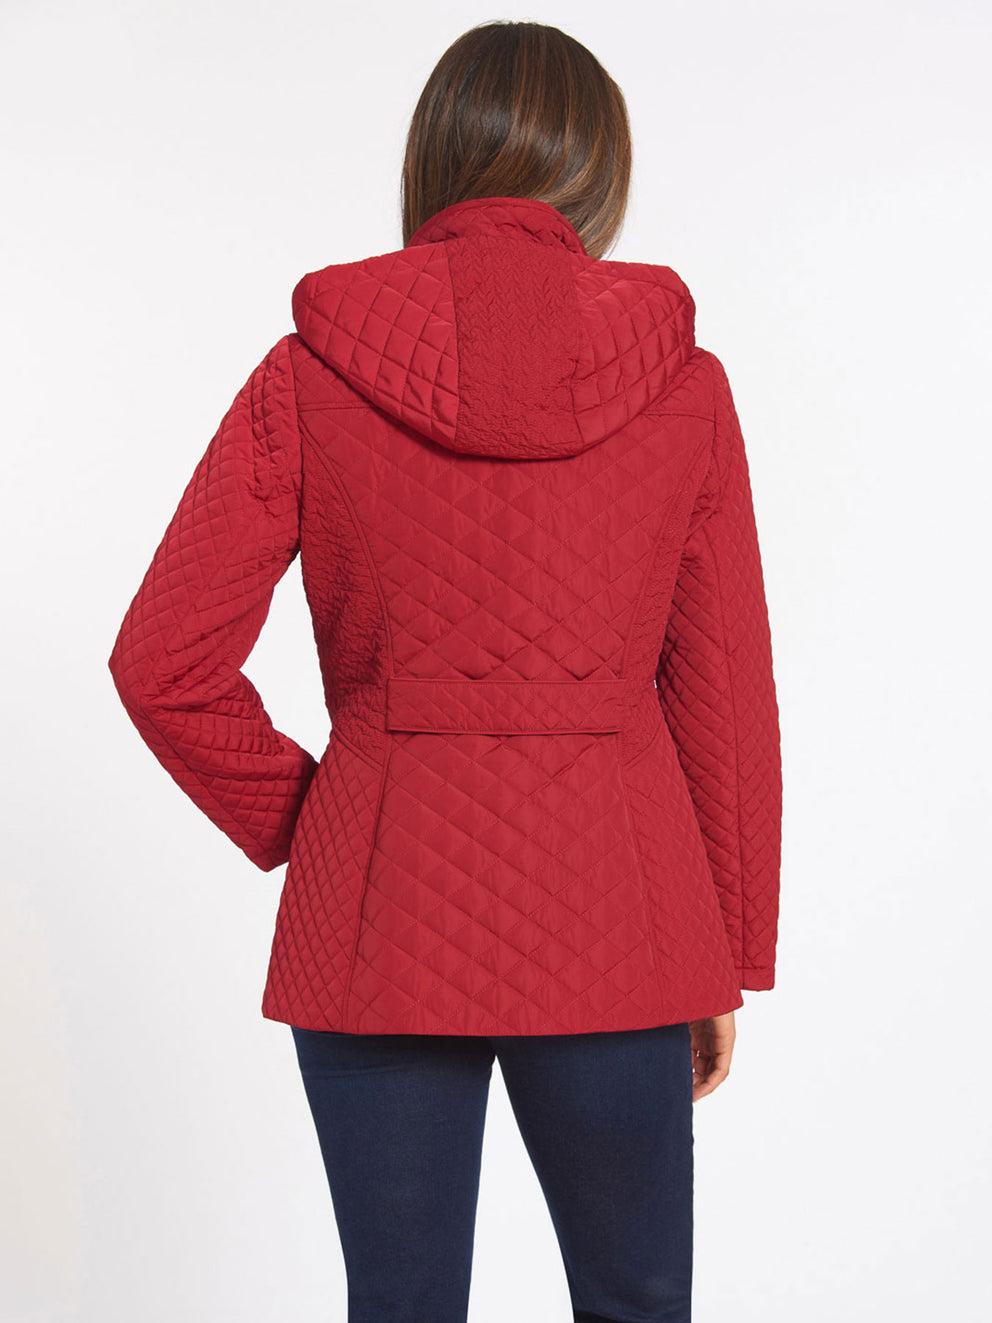 The Jones New York Quilted Zip Front Coat in color Carmine Red - Image Position 4